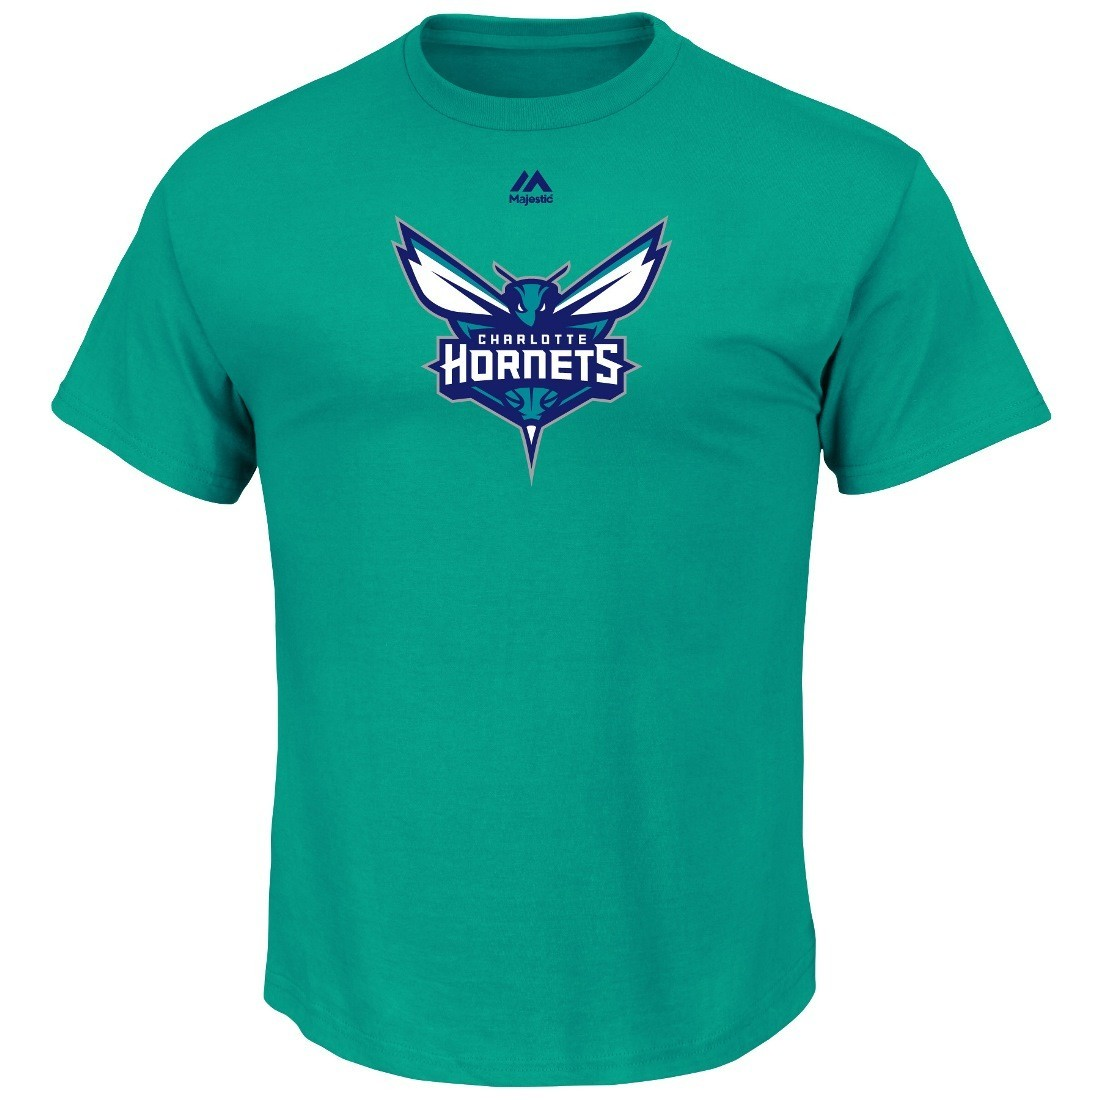 5279c111399 Details about Charlotte Hornets Majestic NBA